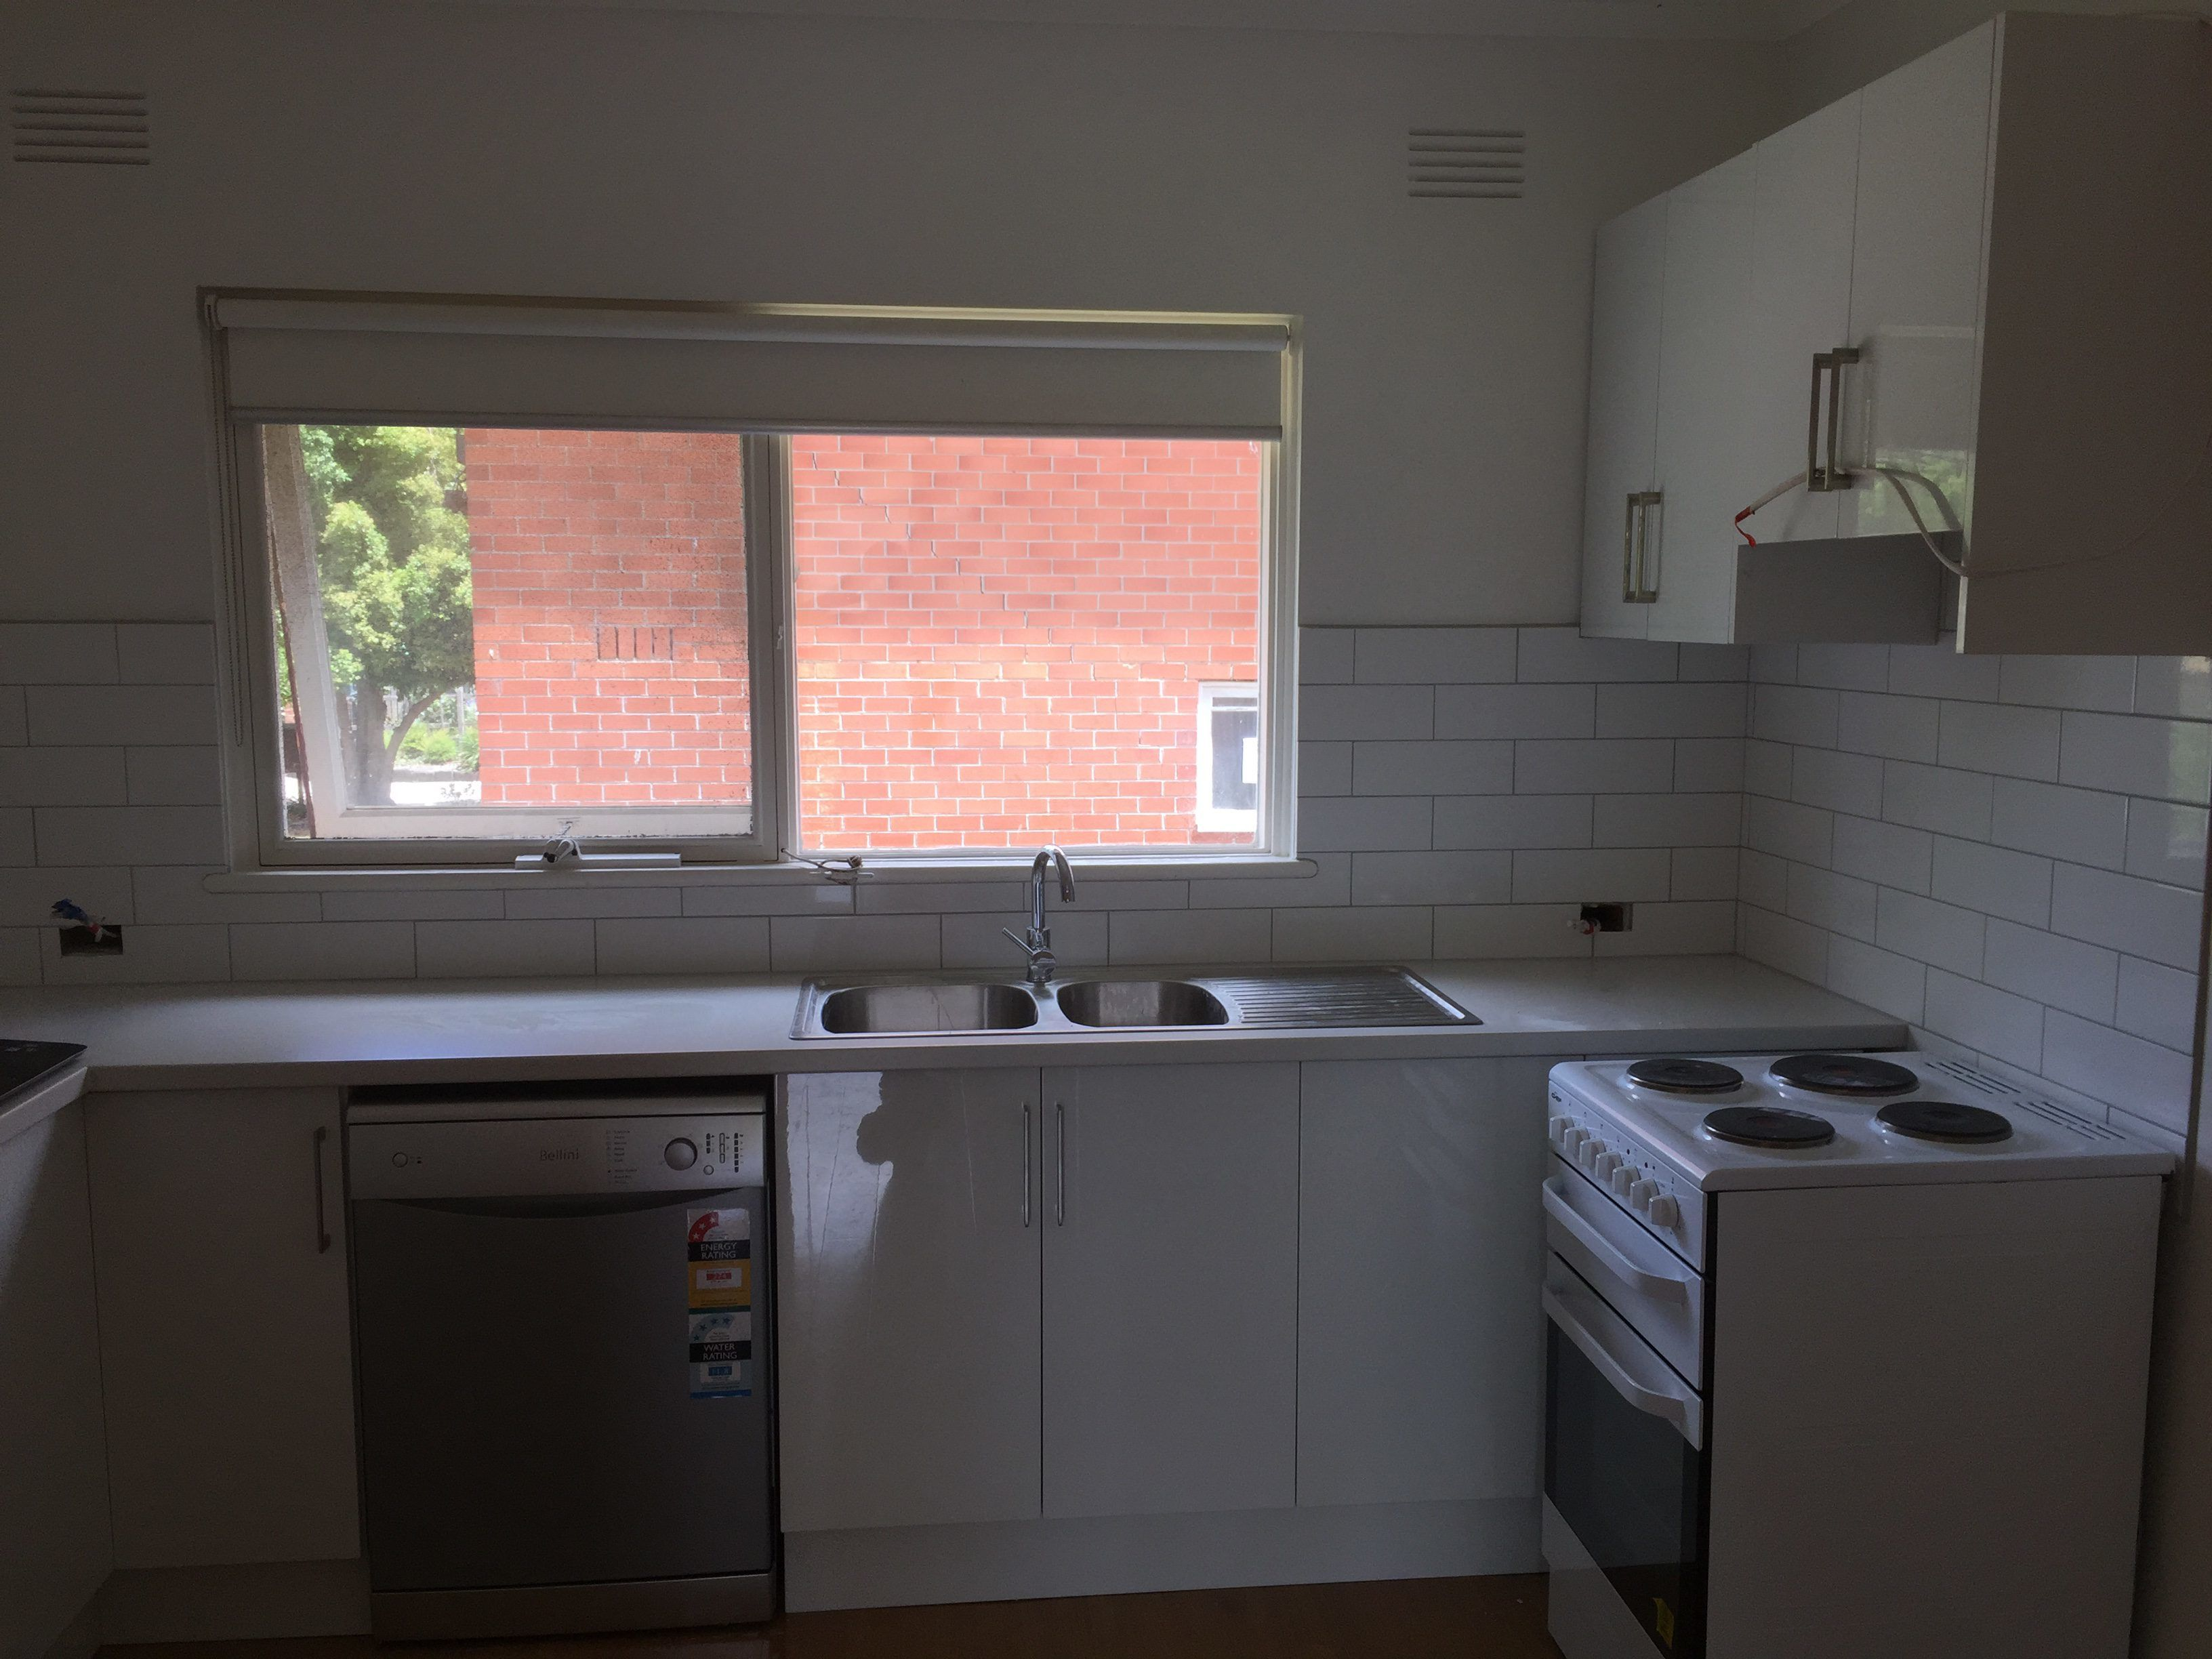 Hawthorn Kitchen splashbacks completed